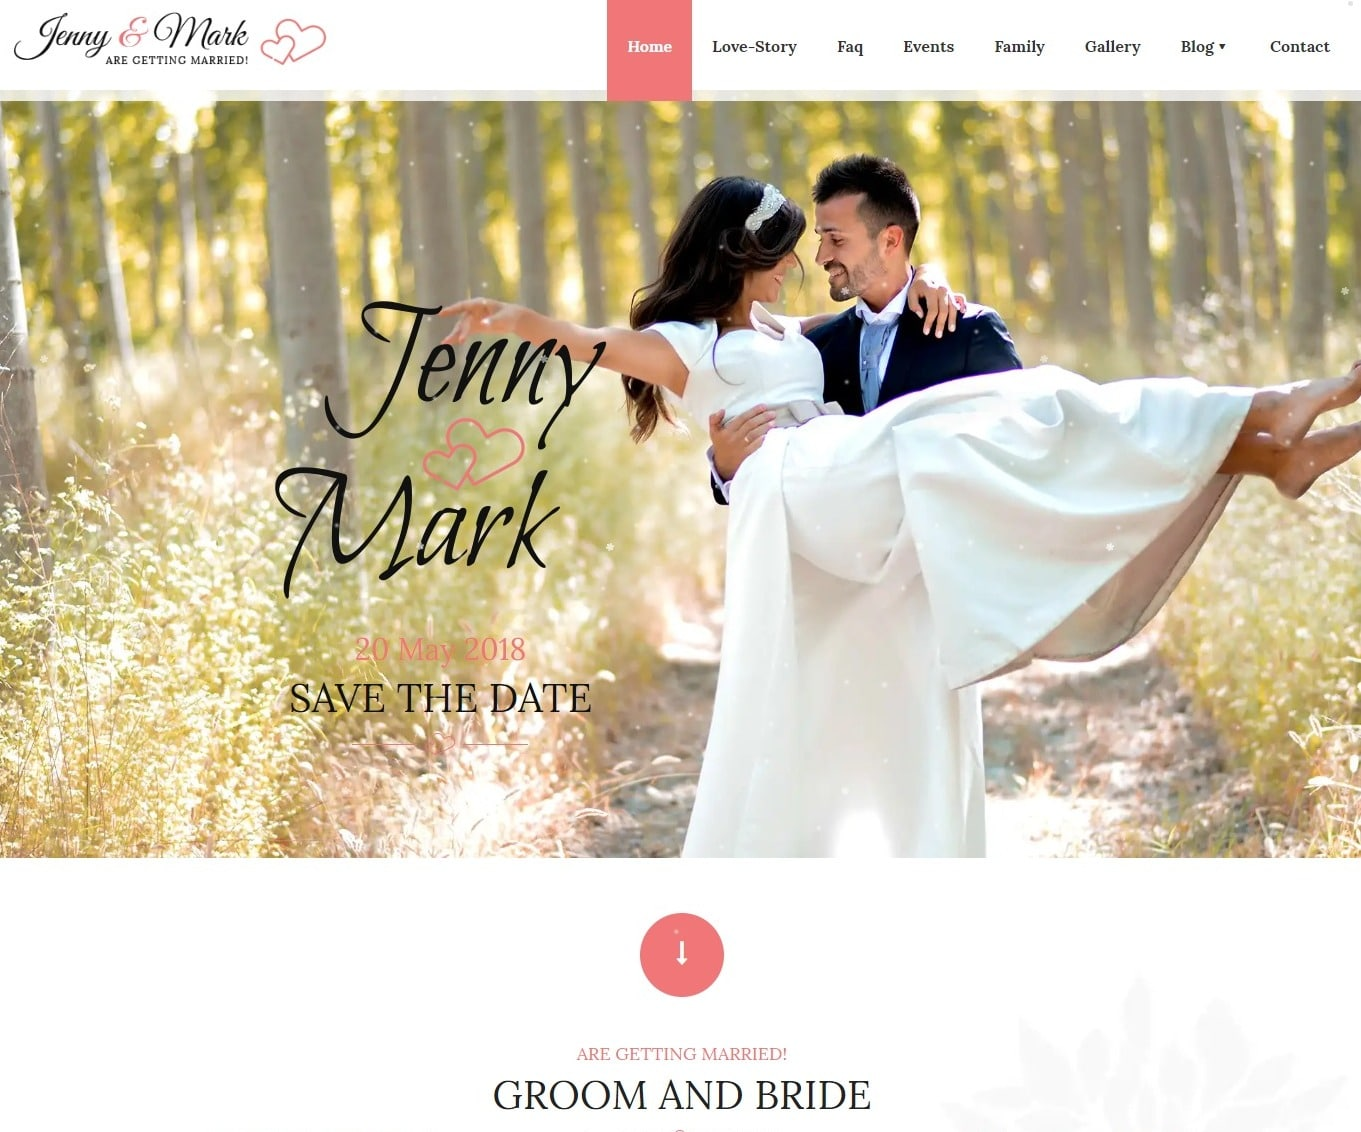 wedding invitationwedding website template